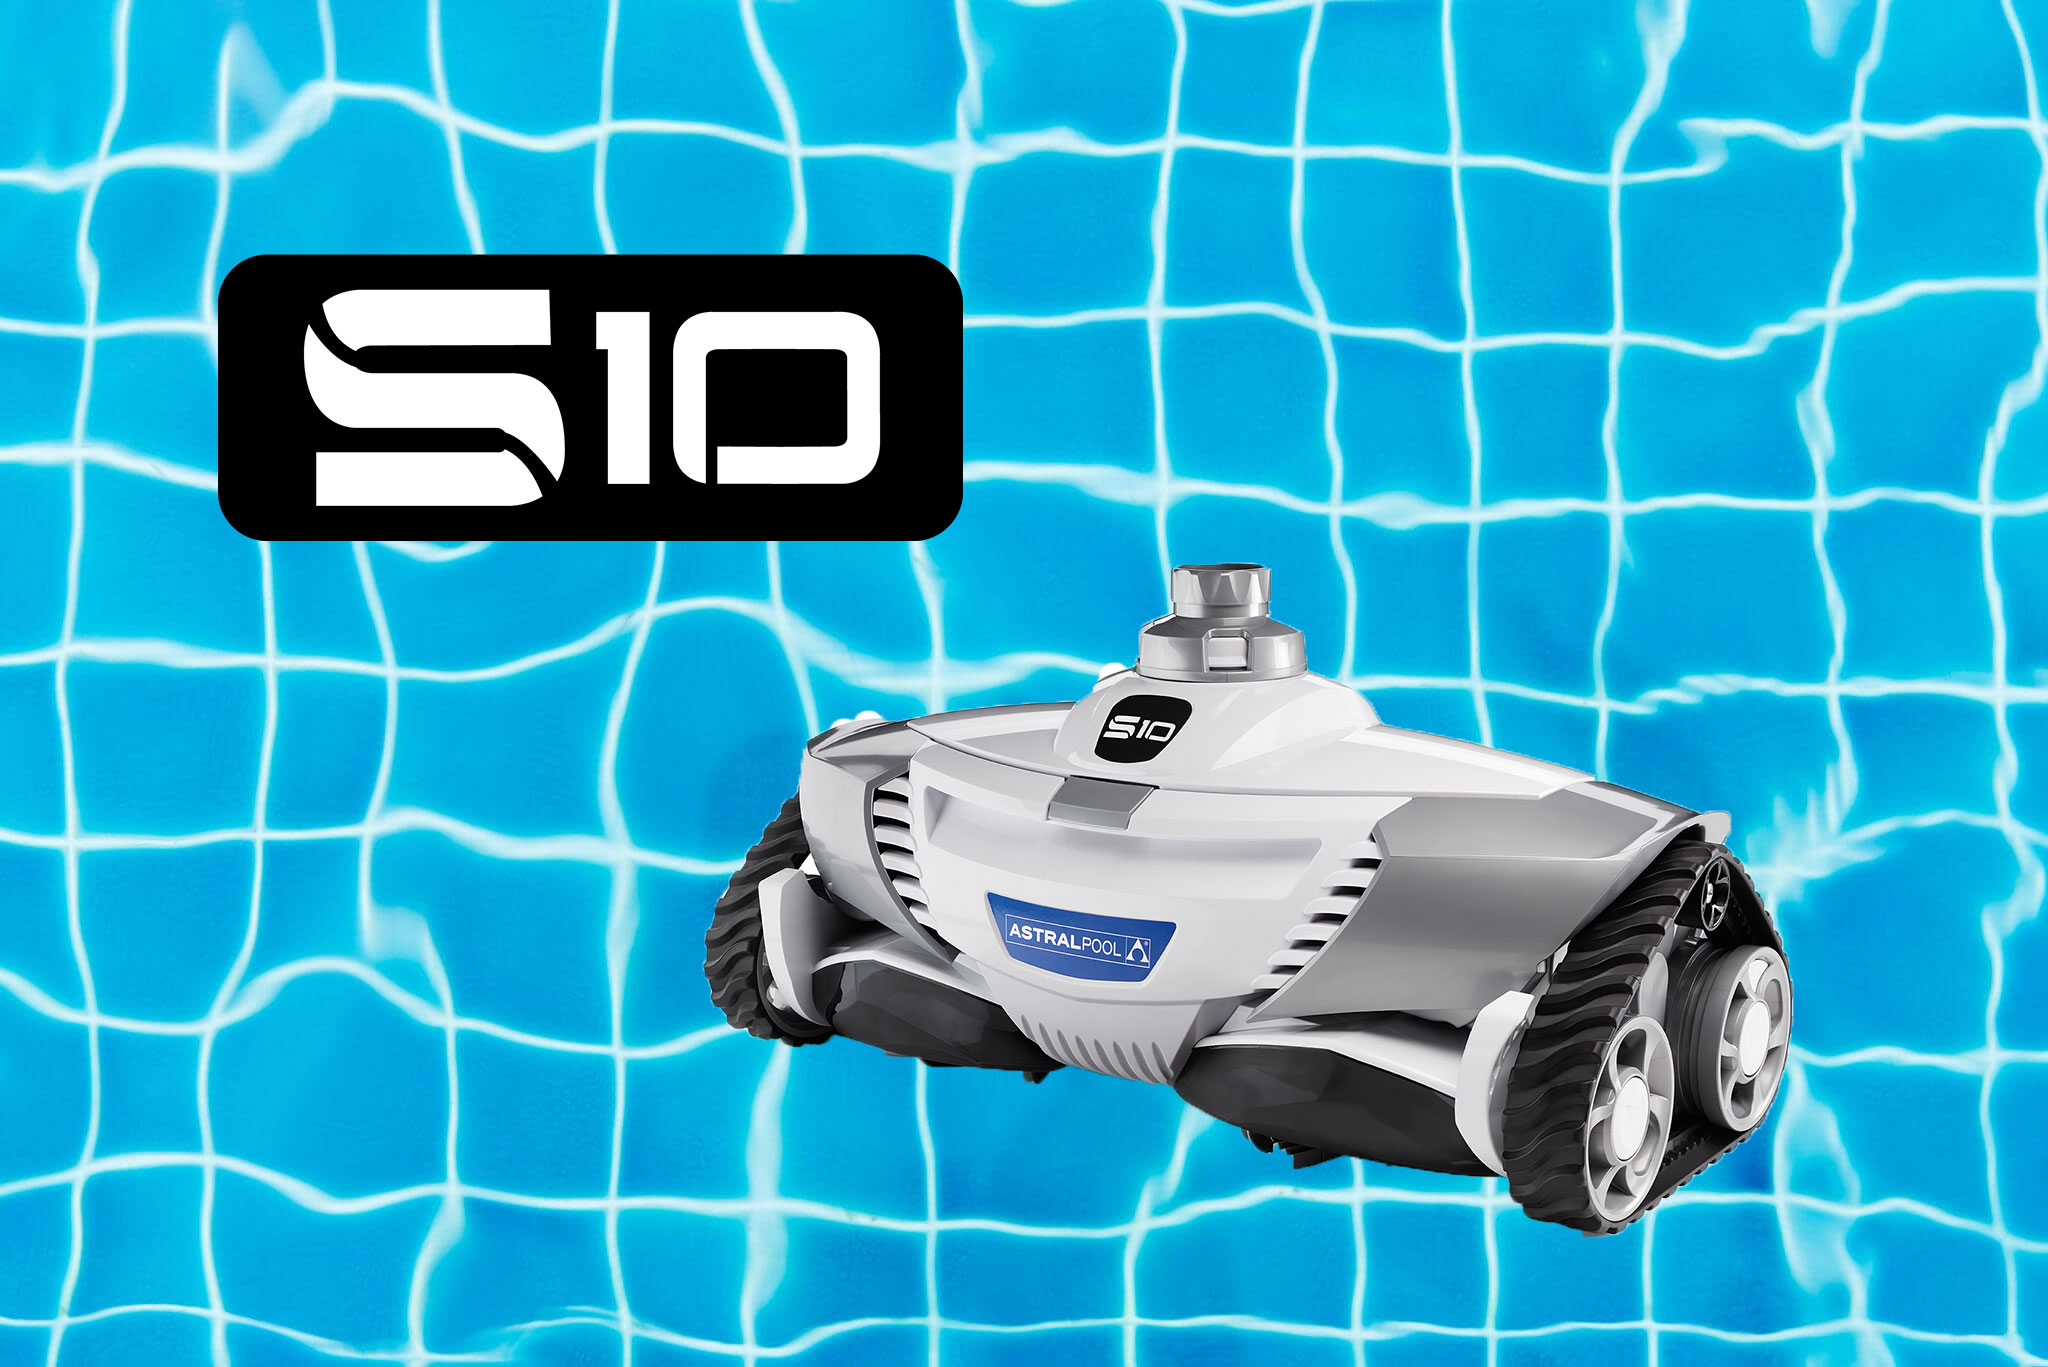 S10 Suction Cleaner - Care & Maintenance article main image